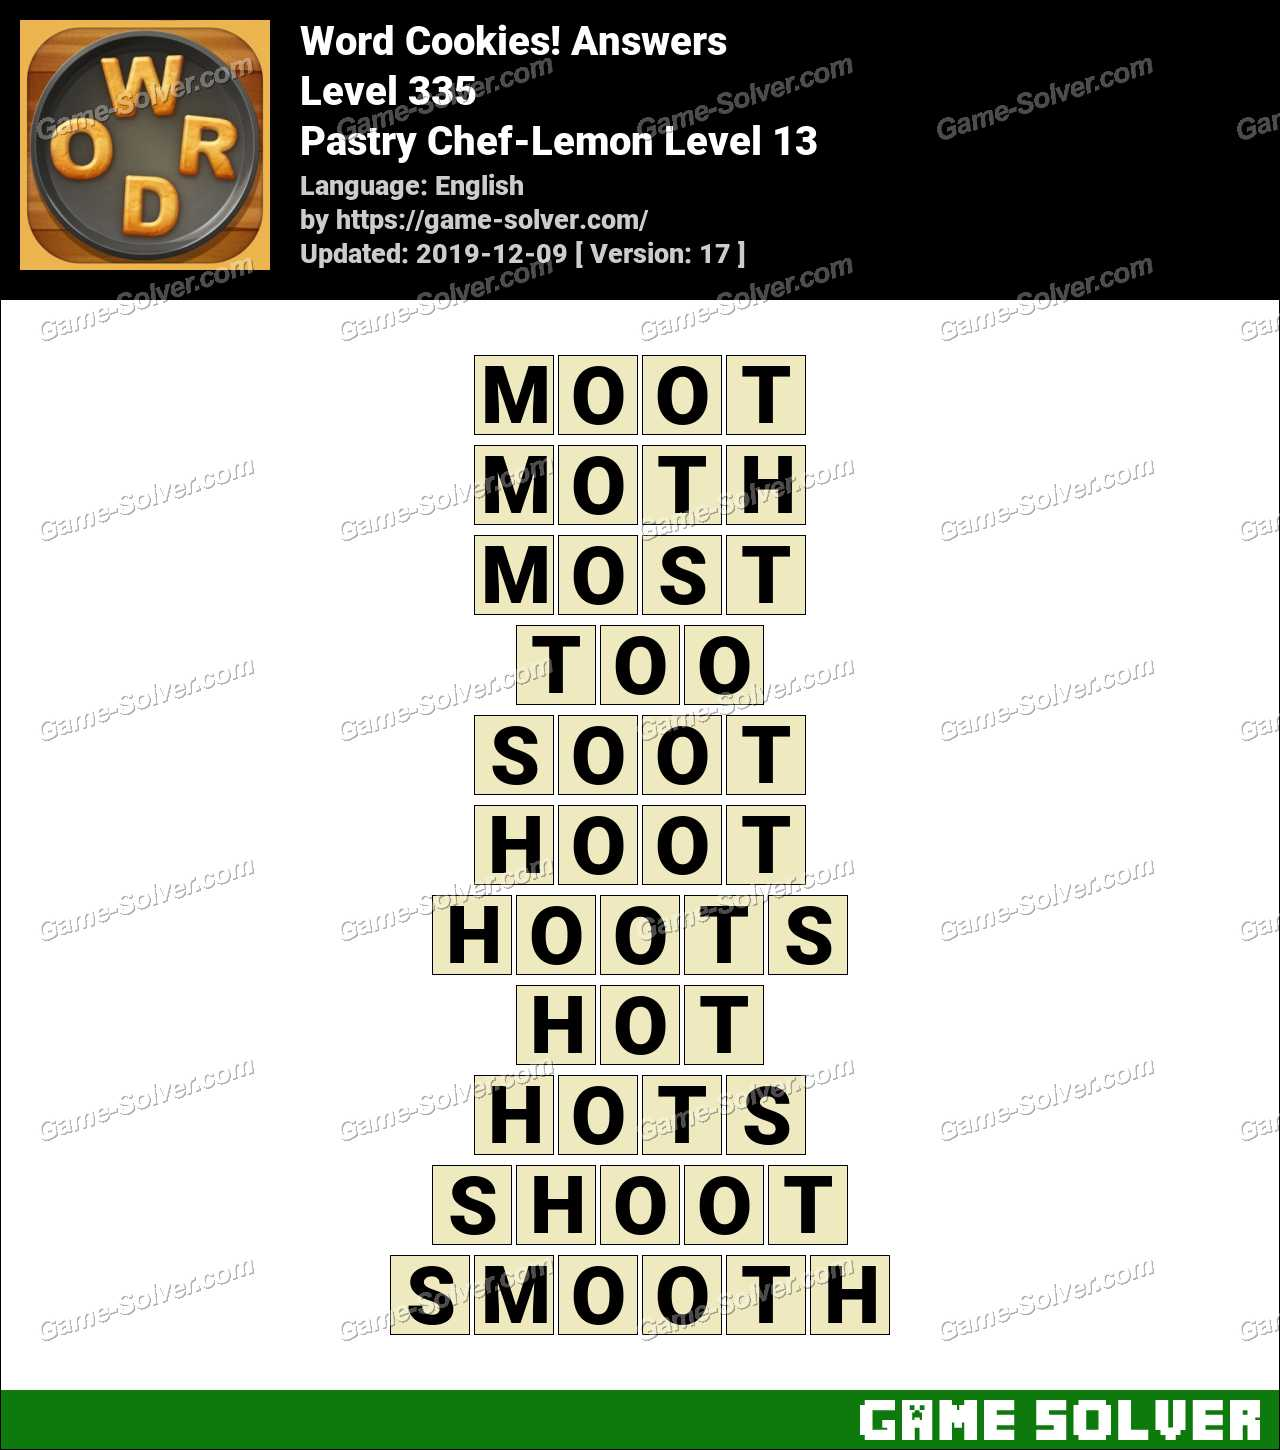 Word Cookies Pastry Chef-Lemon Level 13 Answers